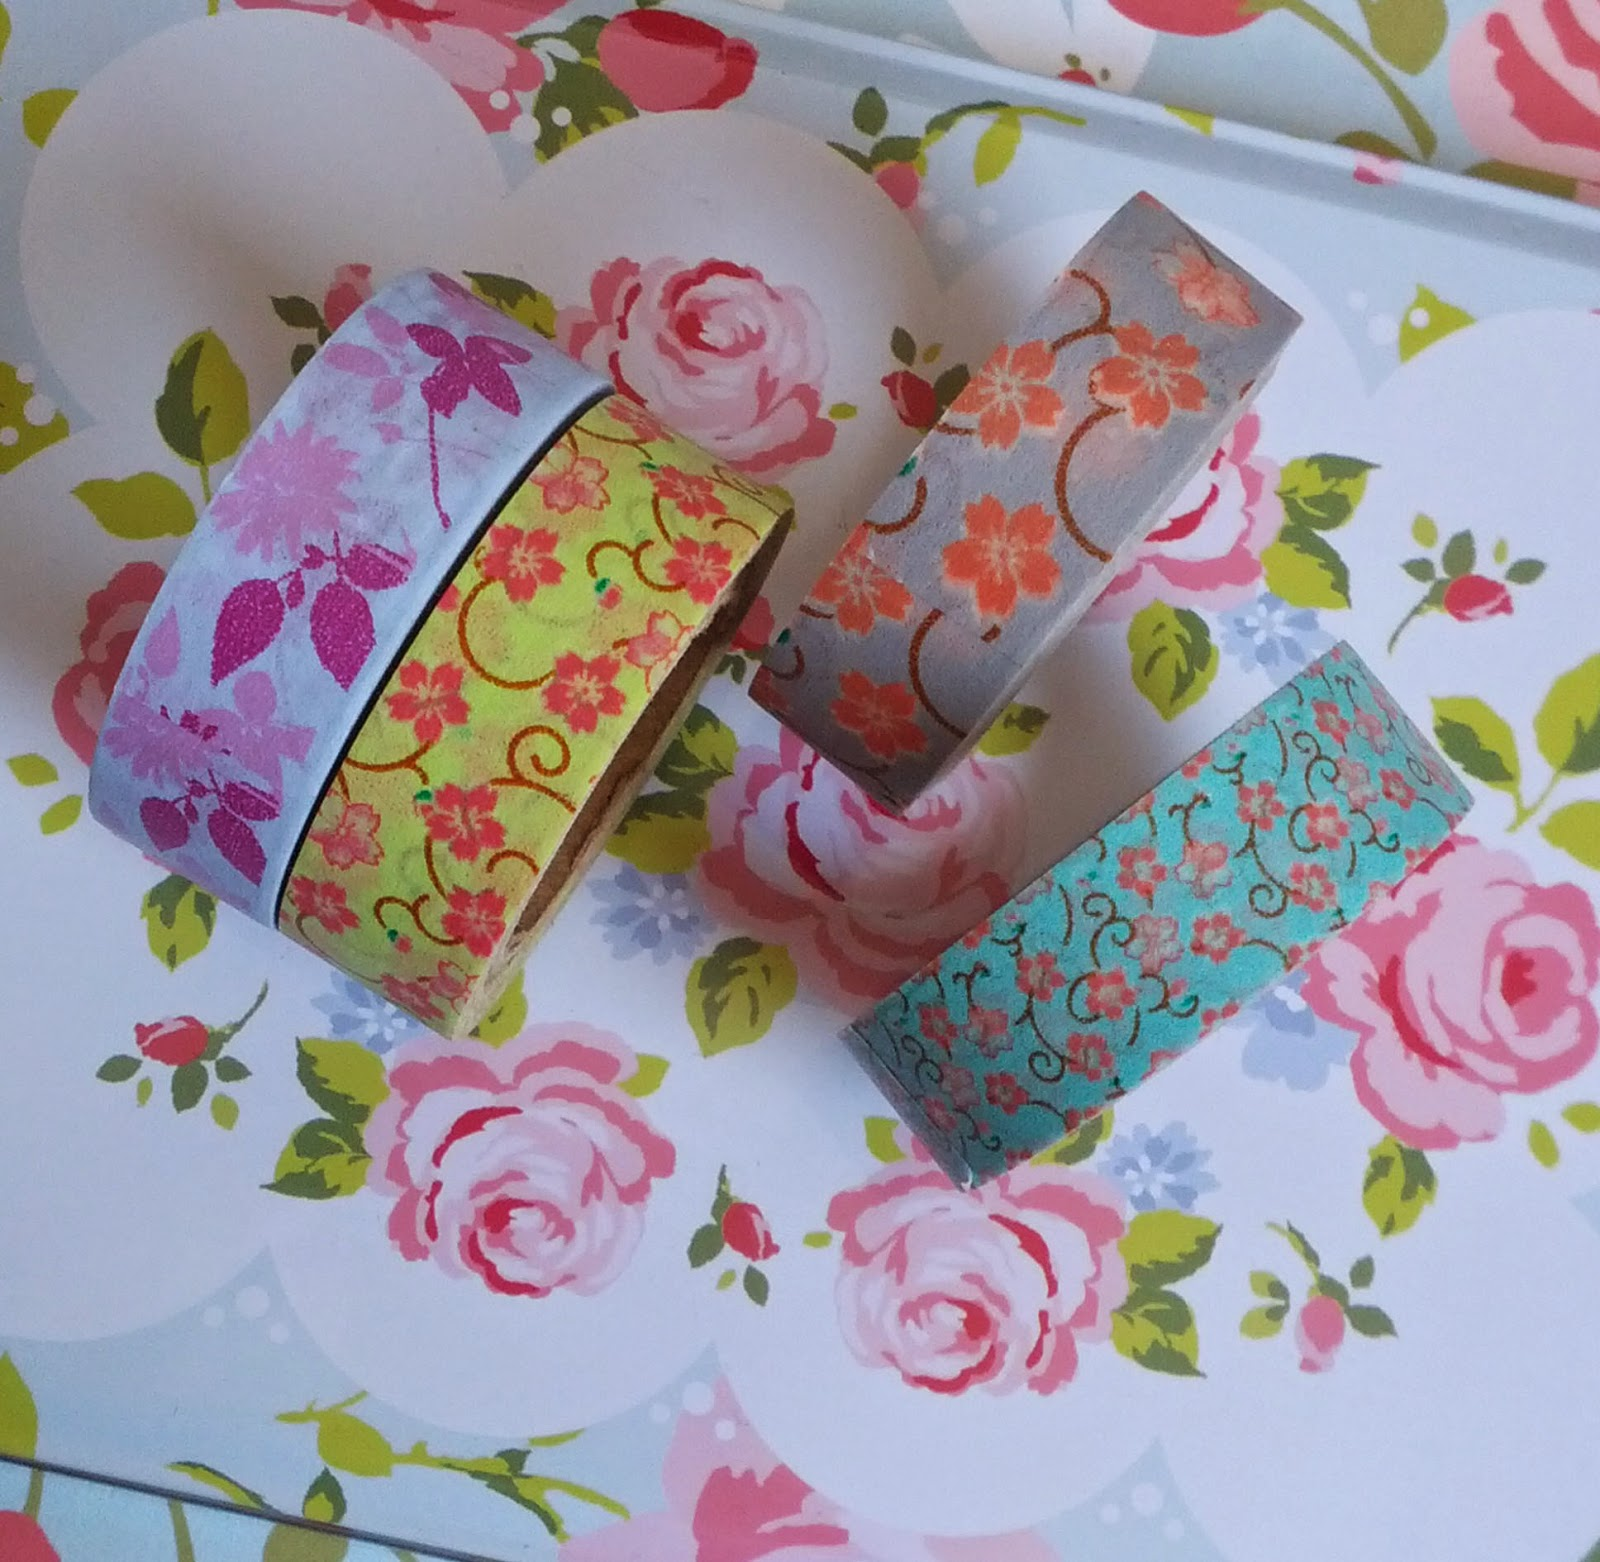 Wo Gibt Es Washi Tape Pretty Things Florale Washi Tape Sammlung